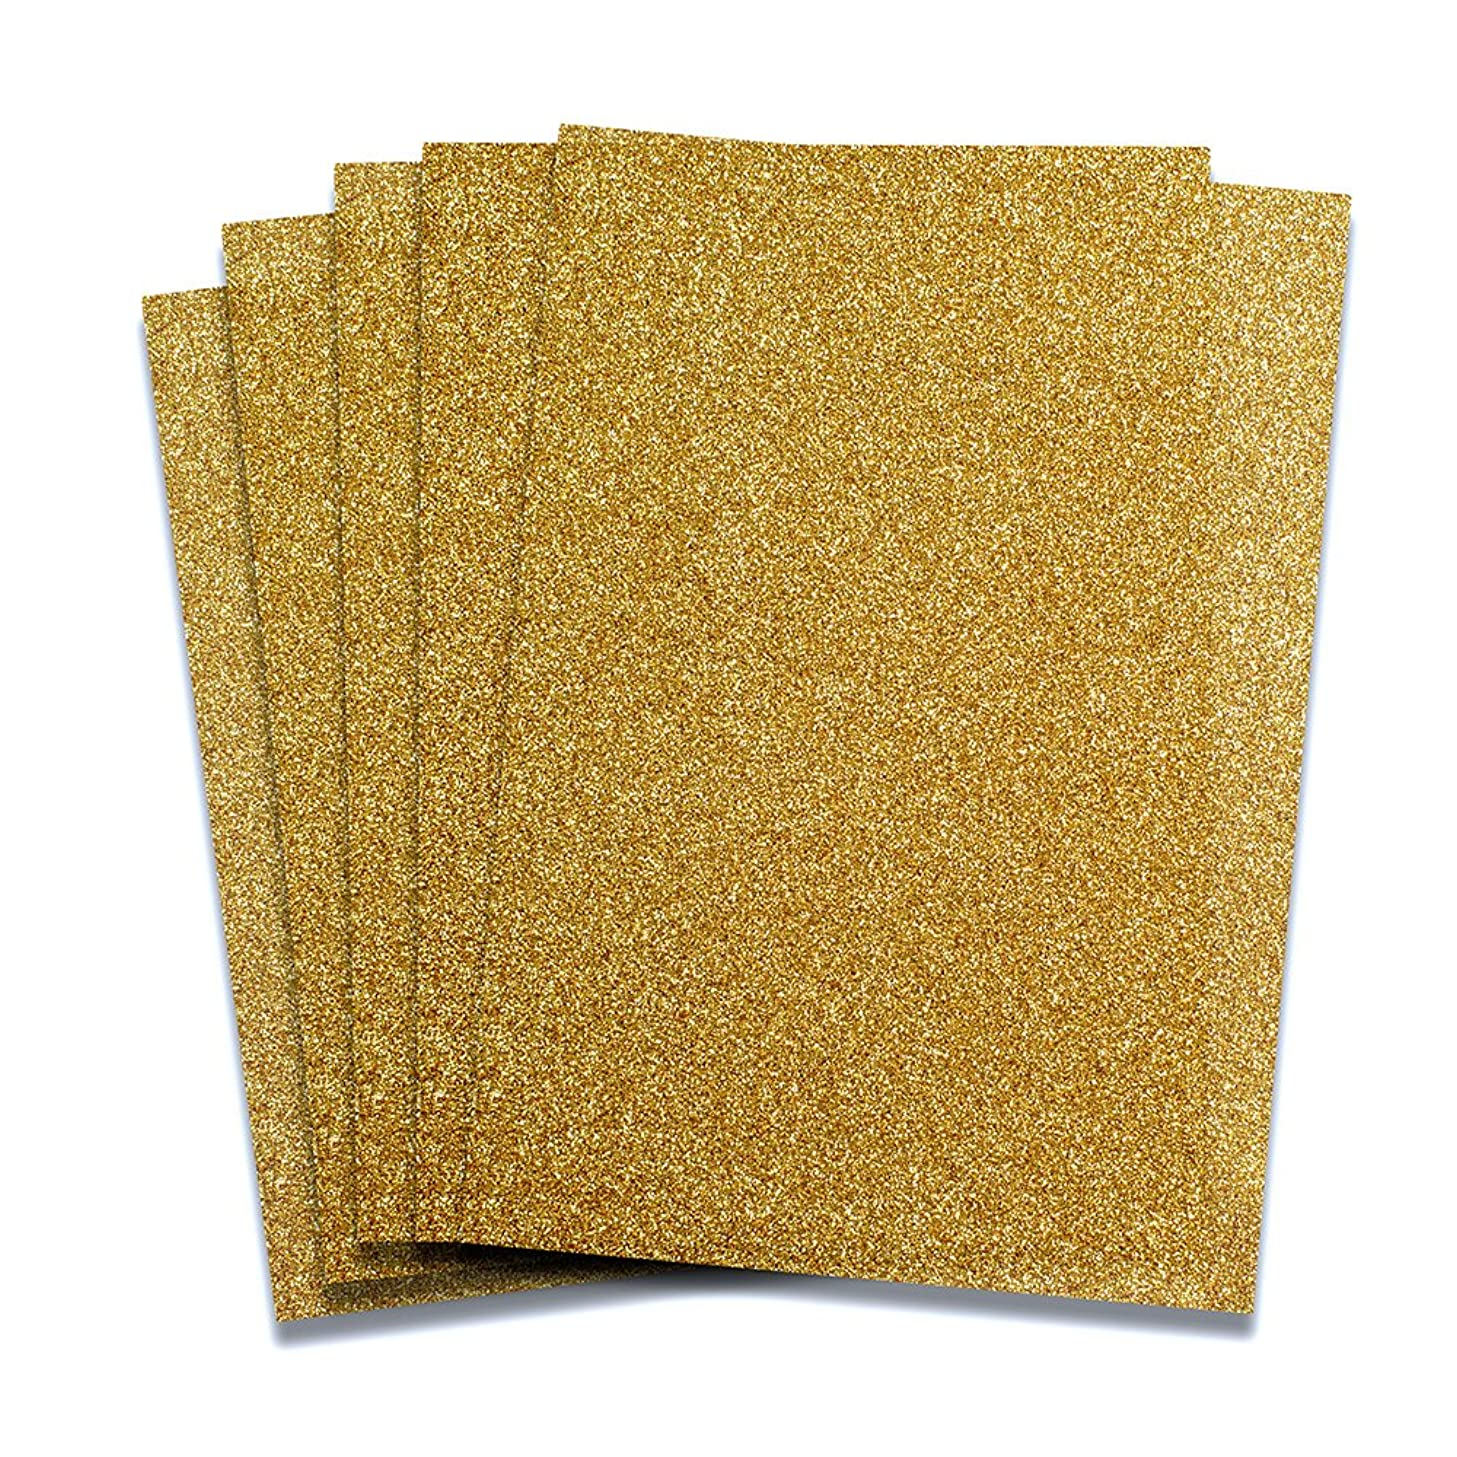 Rozzy Crafts Gold Glitter Heat Transfer Vinyl HTV - 5 Sheets Each 10 in x 12 in HTV for Cricut and Silhouette